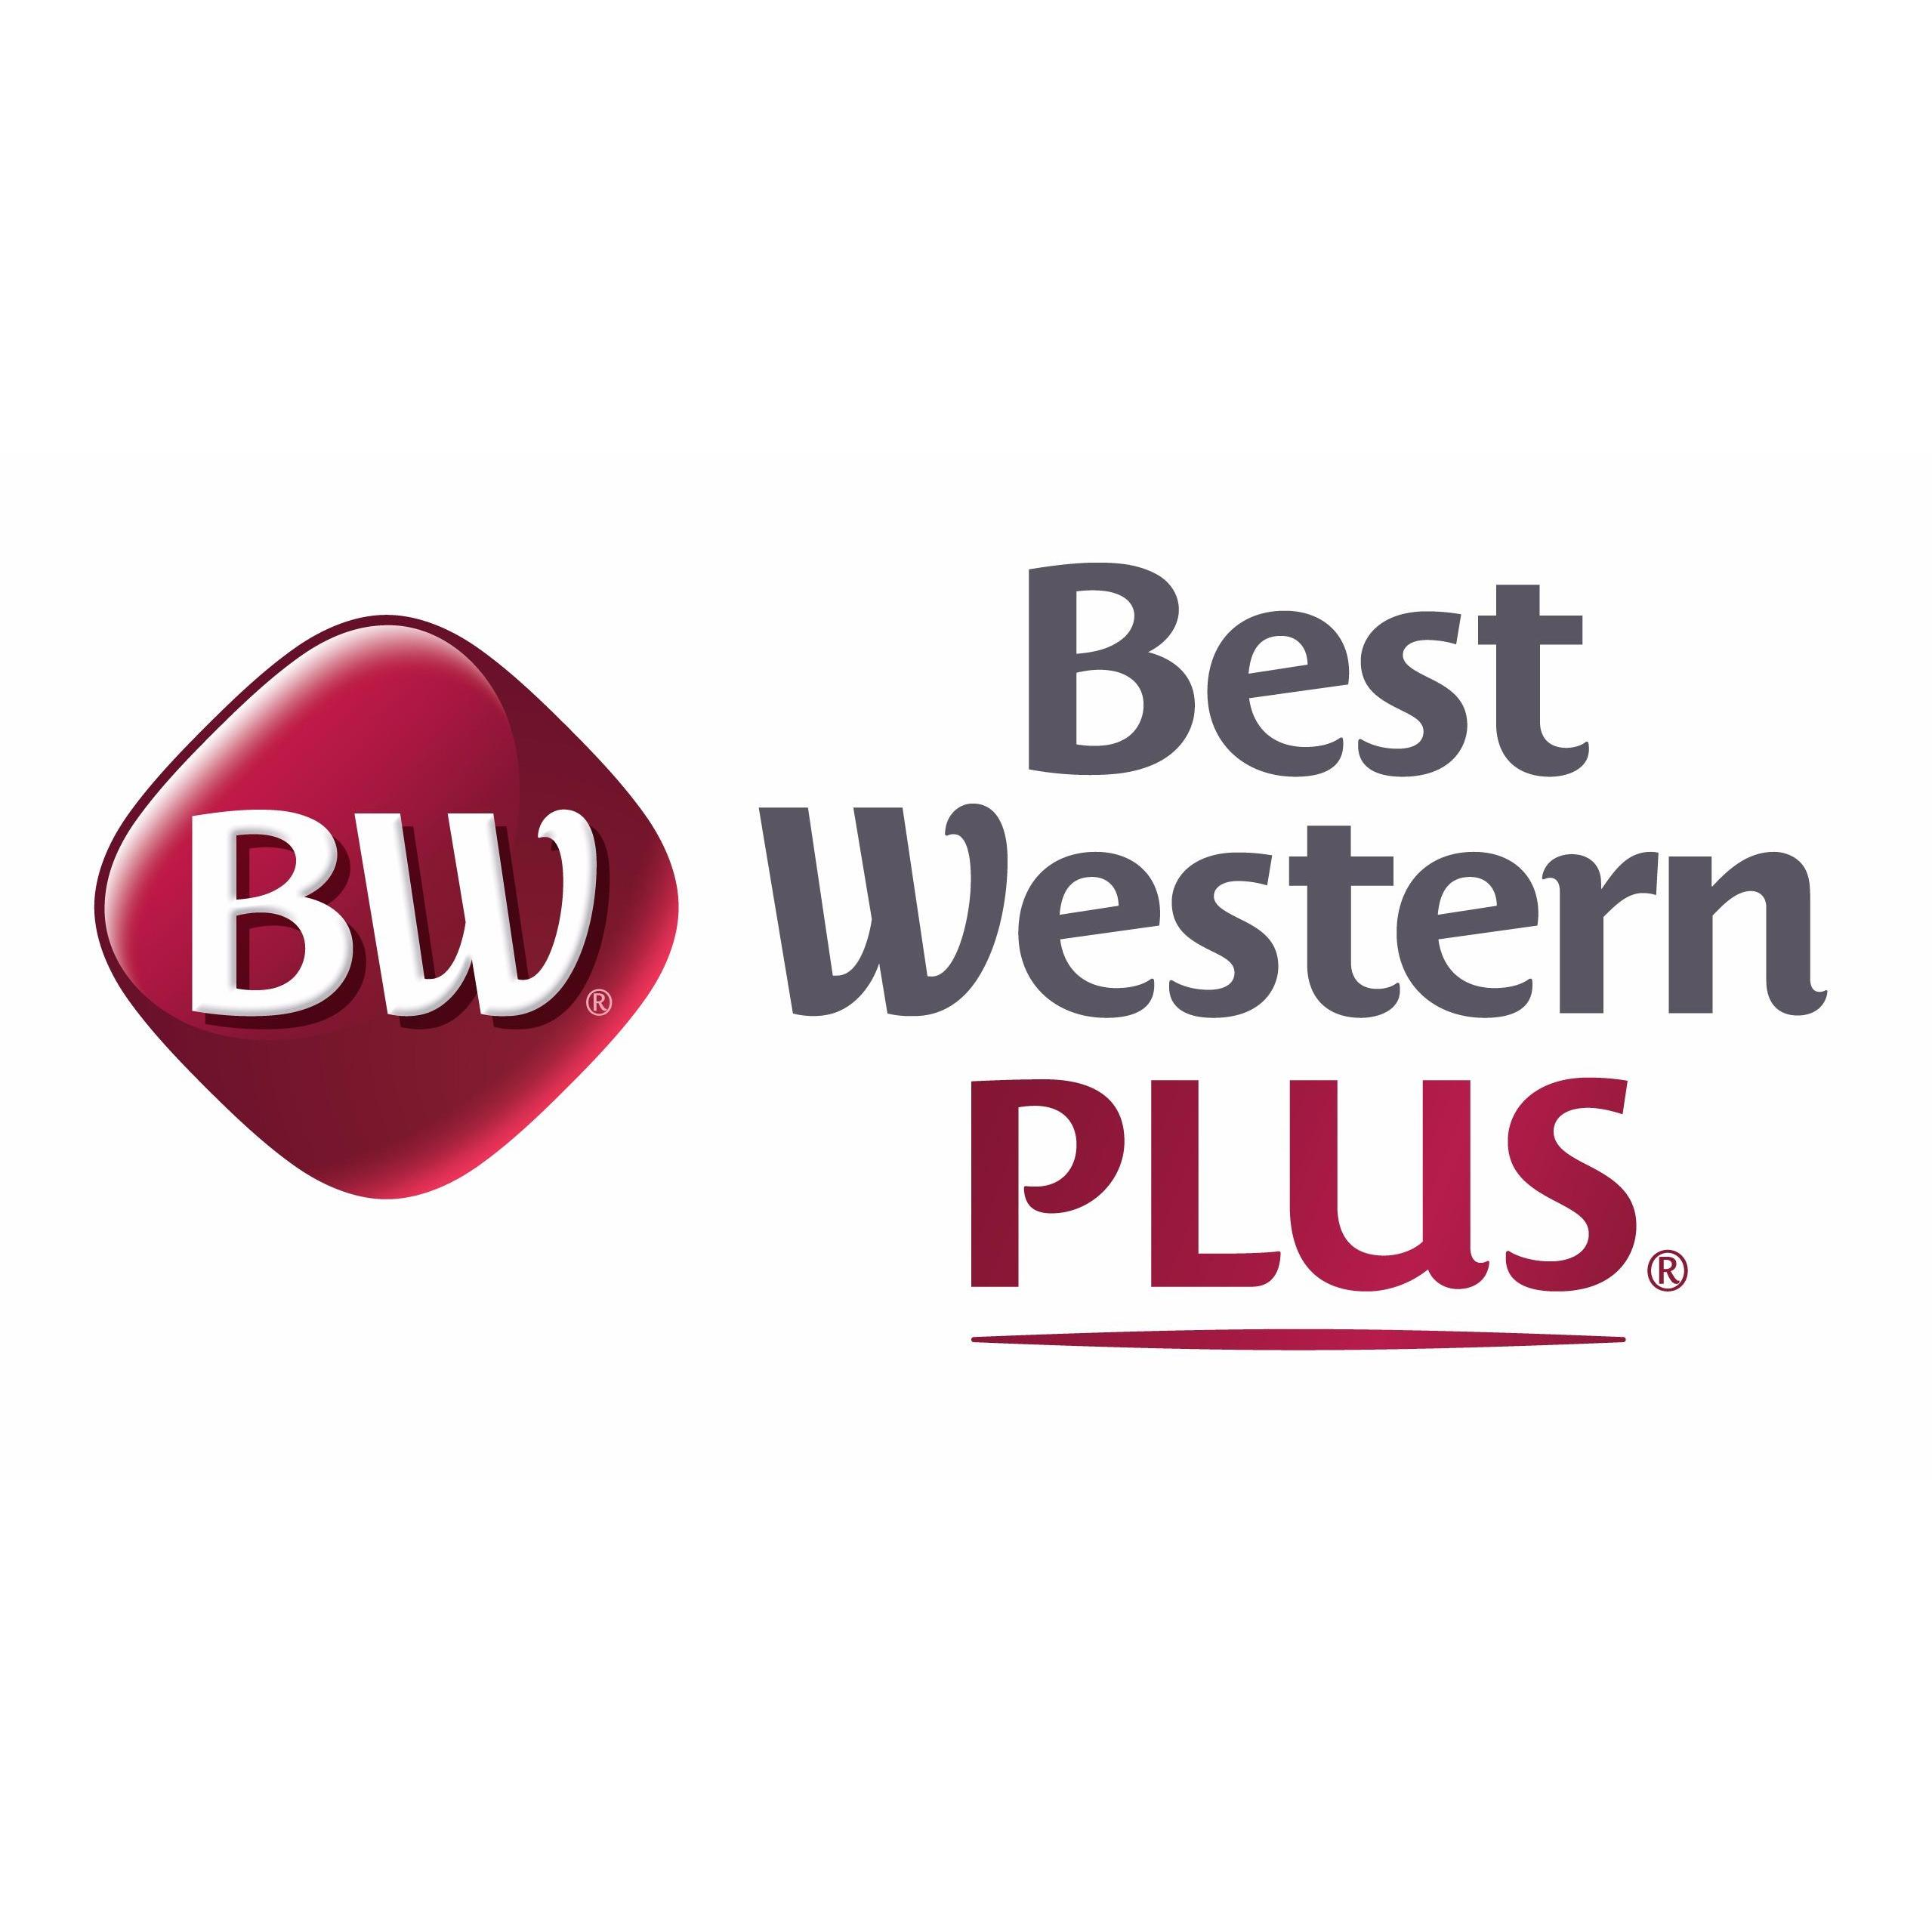 Best Western Plus Intercontinental Airport Inn - Humble, TX - Hotels & Motels